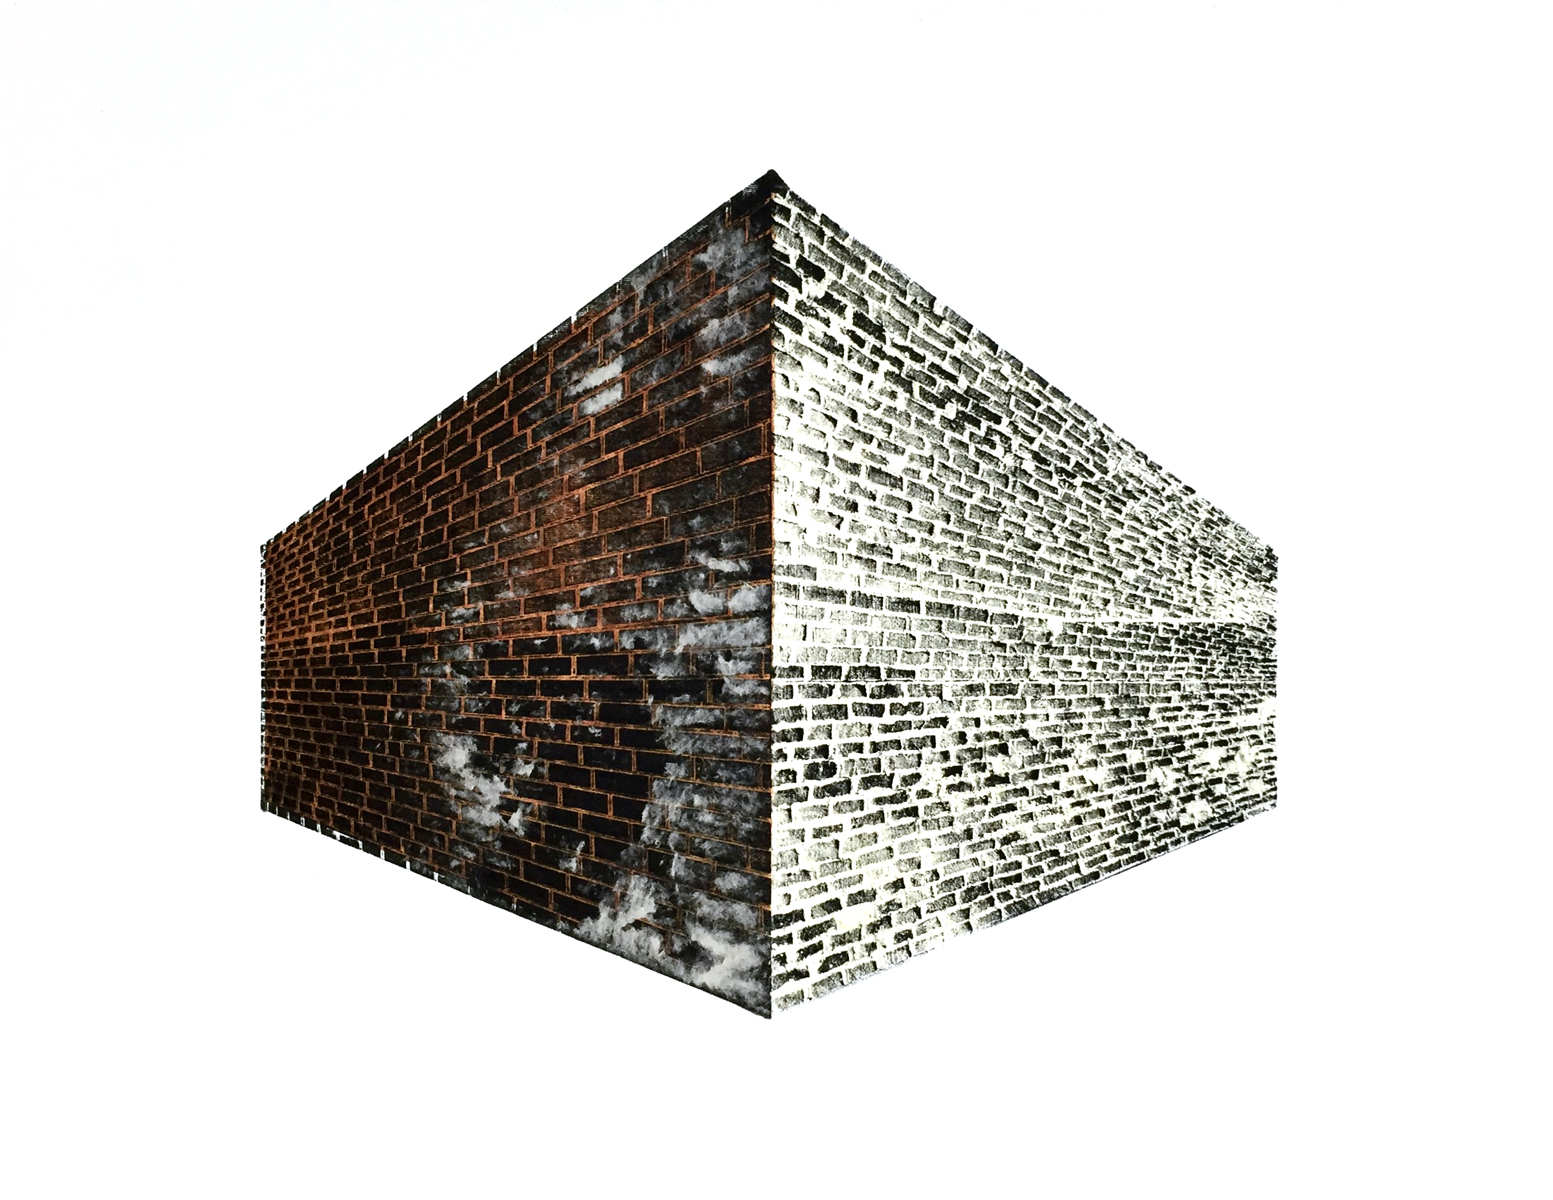 Brick Wall_Collage